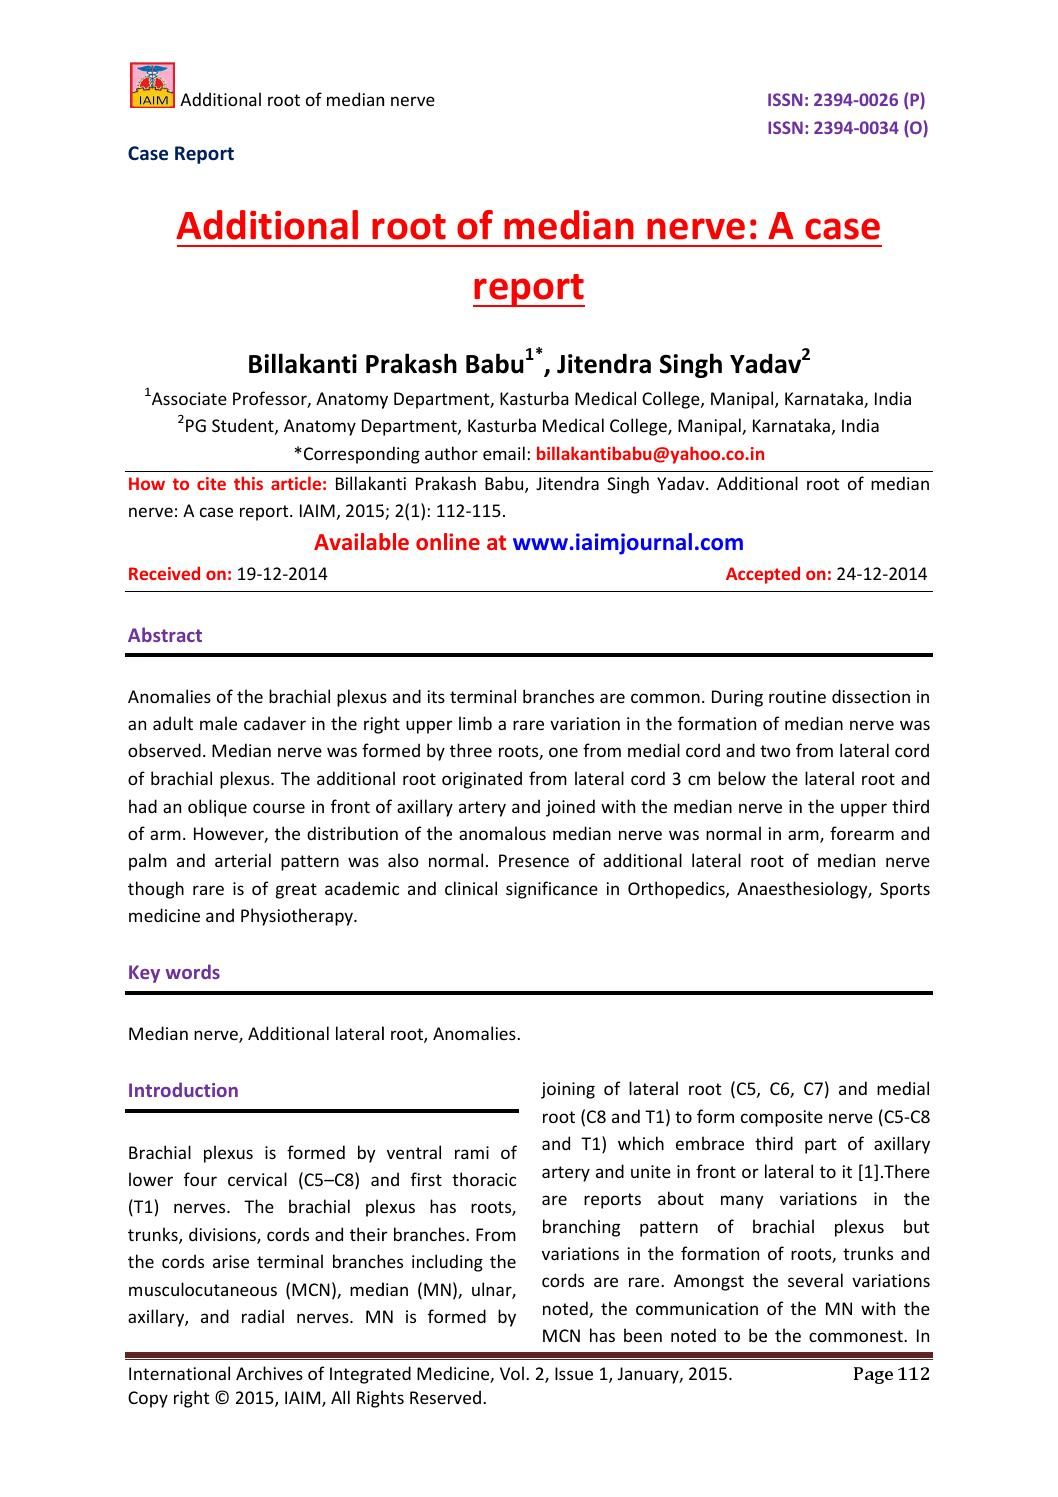 Additional Root Of Median Nerve A Case Report By International